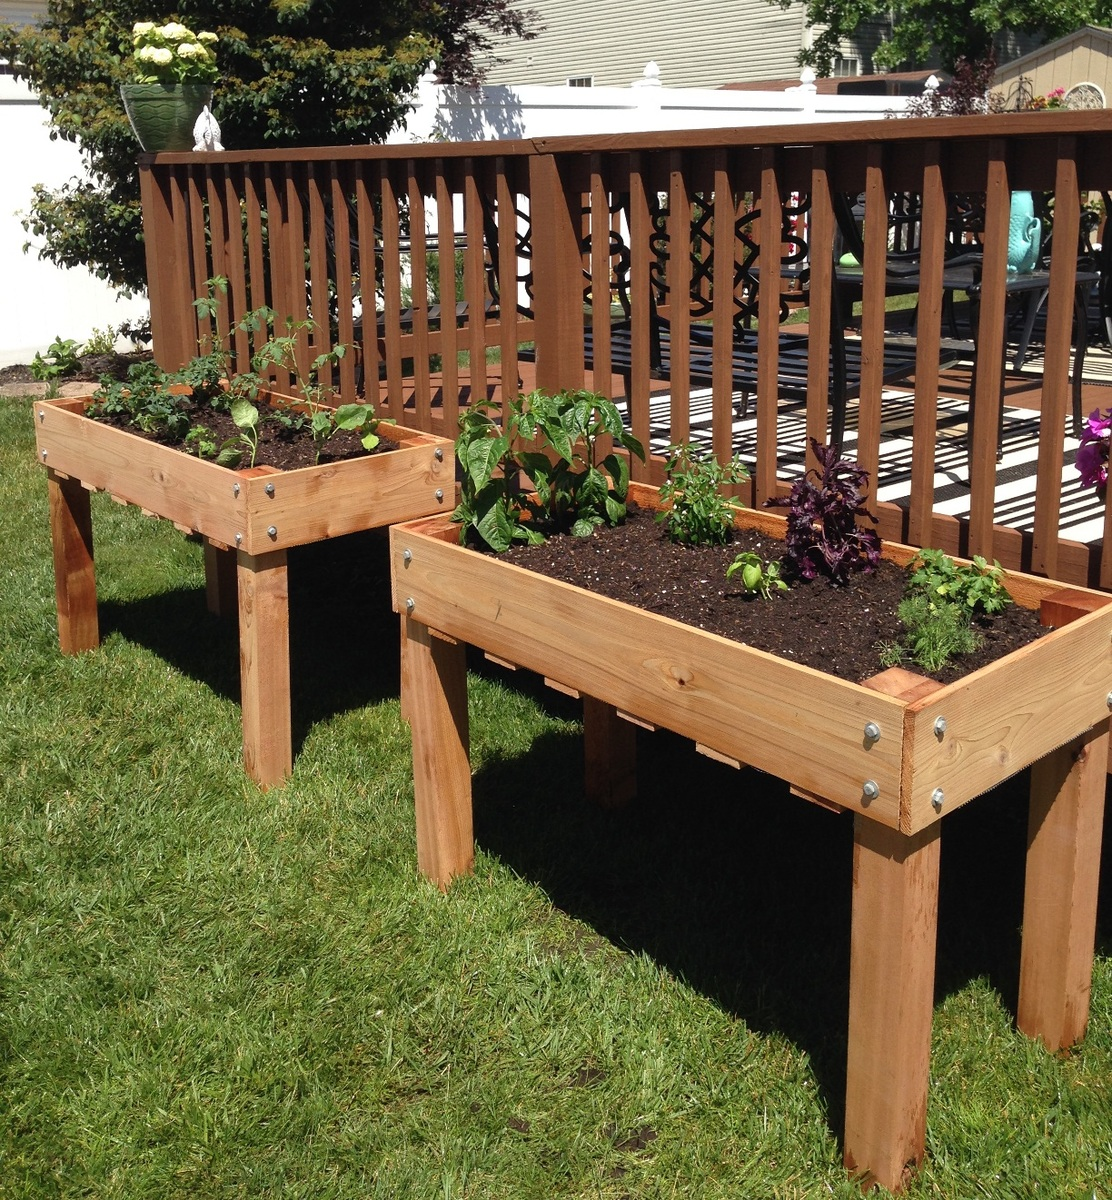 New counter height planters in use Ana White Garden